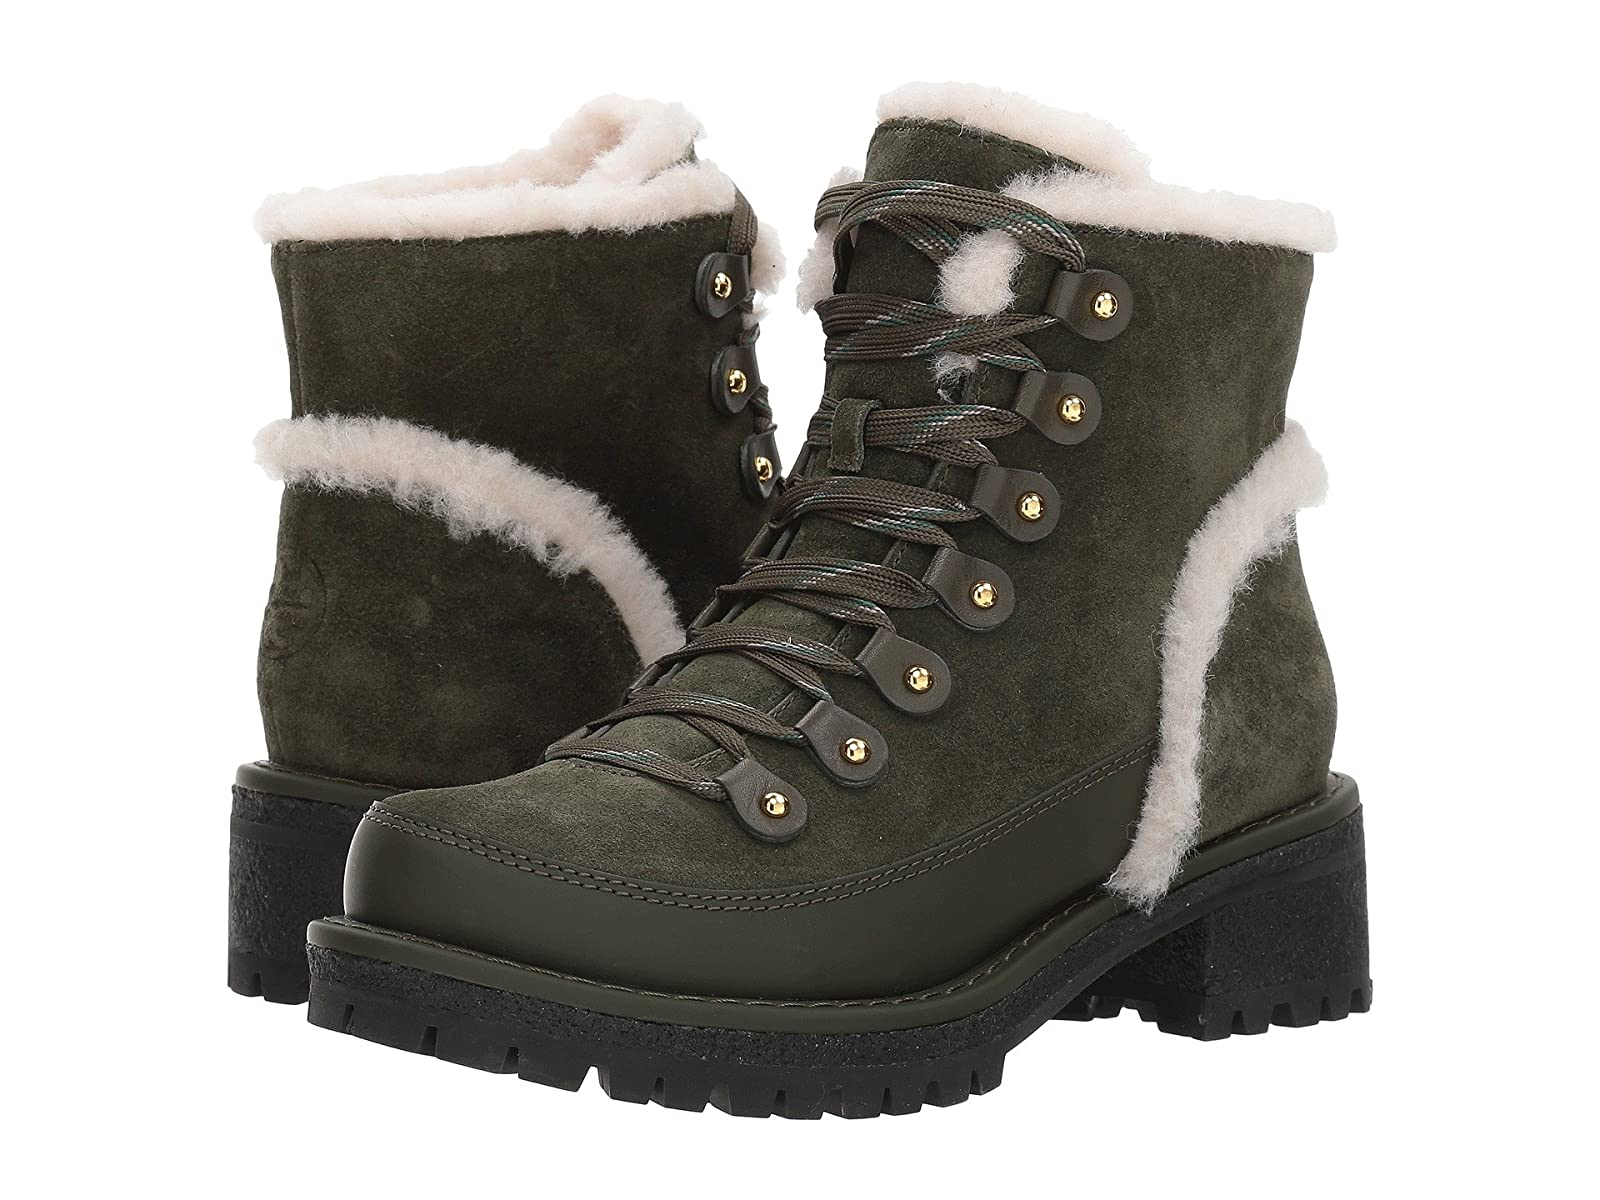 Tory Burch Cooper Shearling BootCheap and distinctive eye-catching shoes